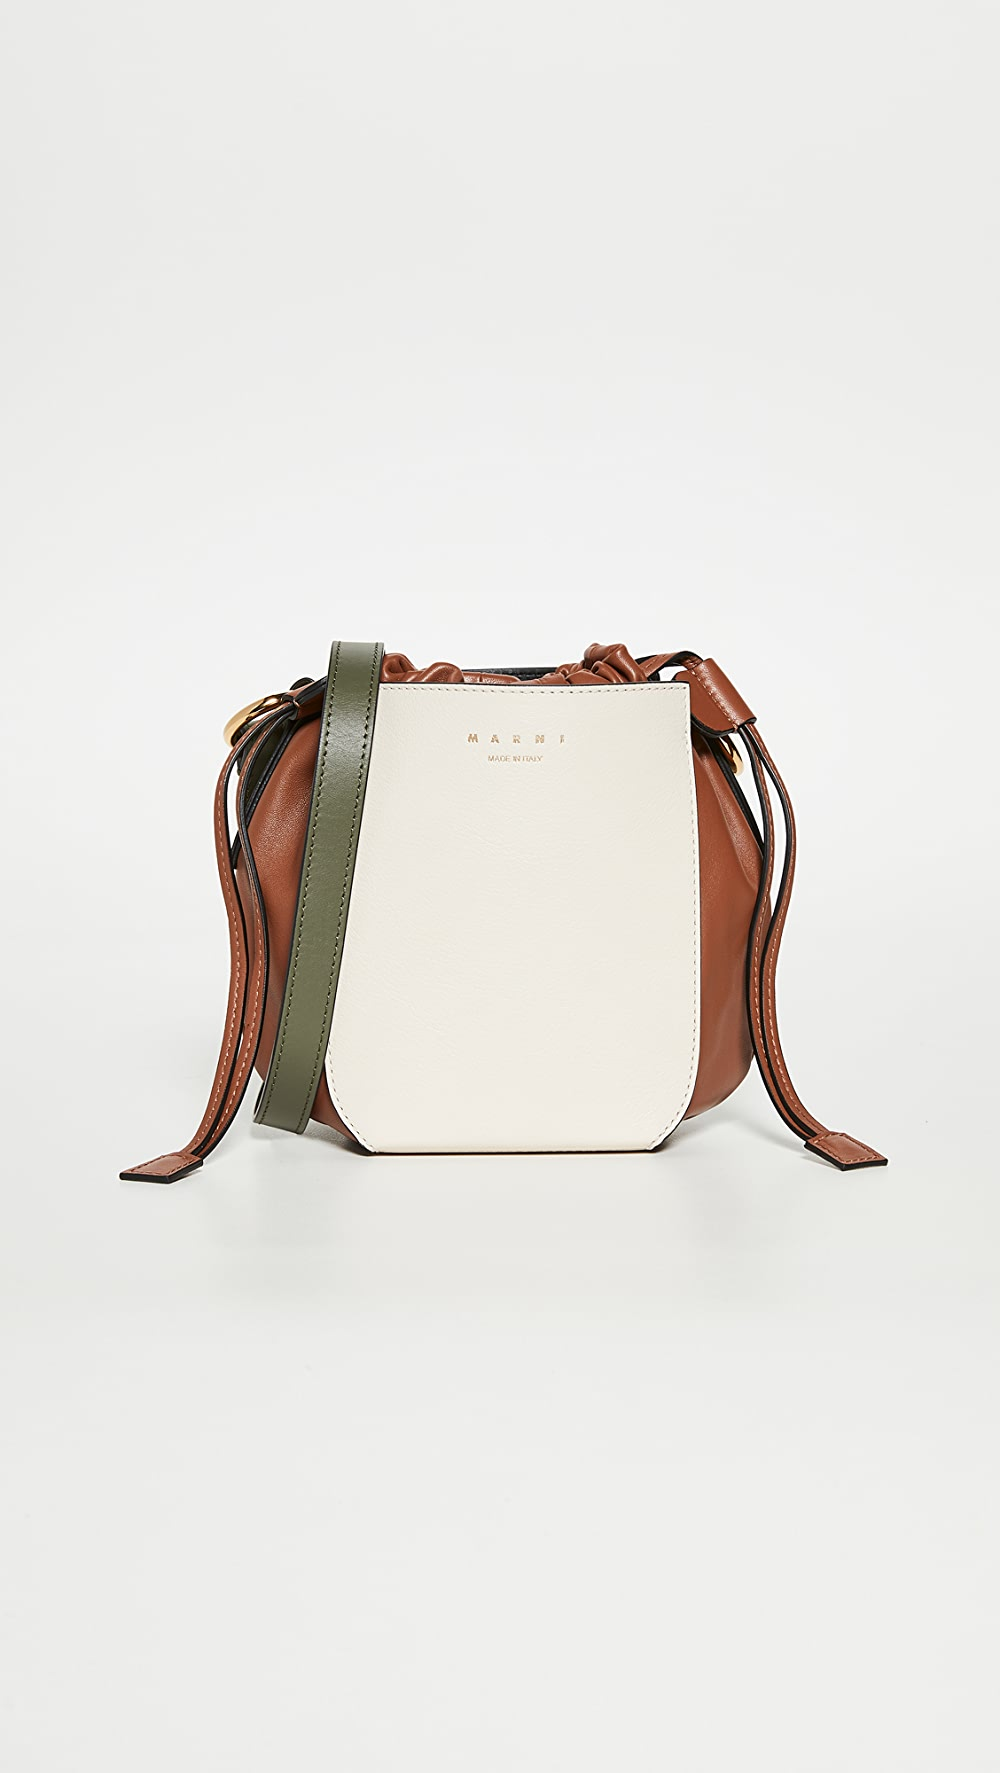 2019 New Style Marni - Gusset Bag Products Hot Sale